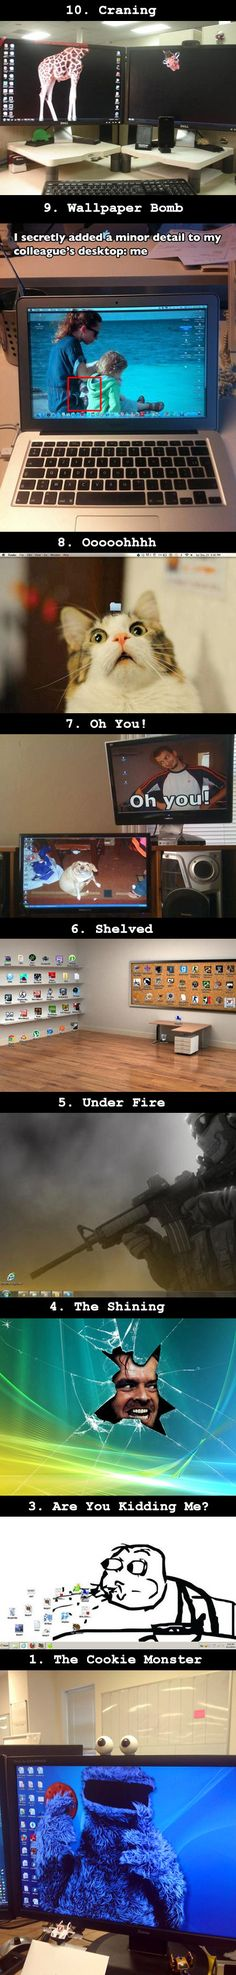 Here are some cool and funny ways to make your computer desktop stand out.